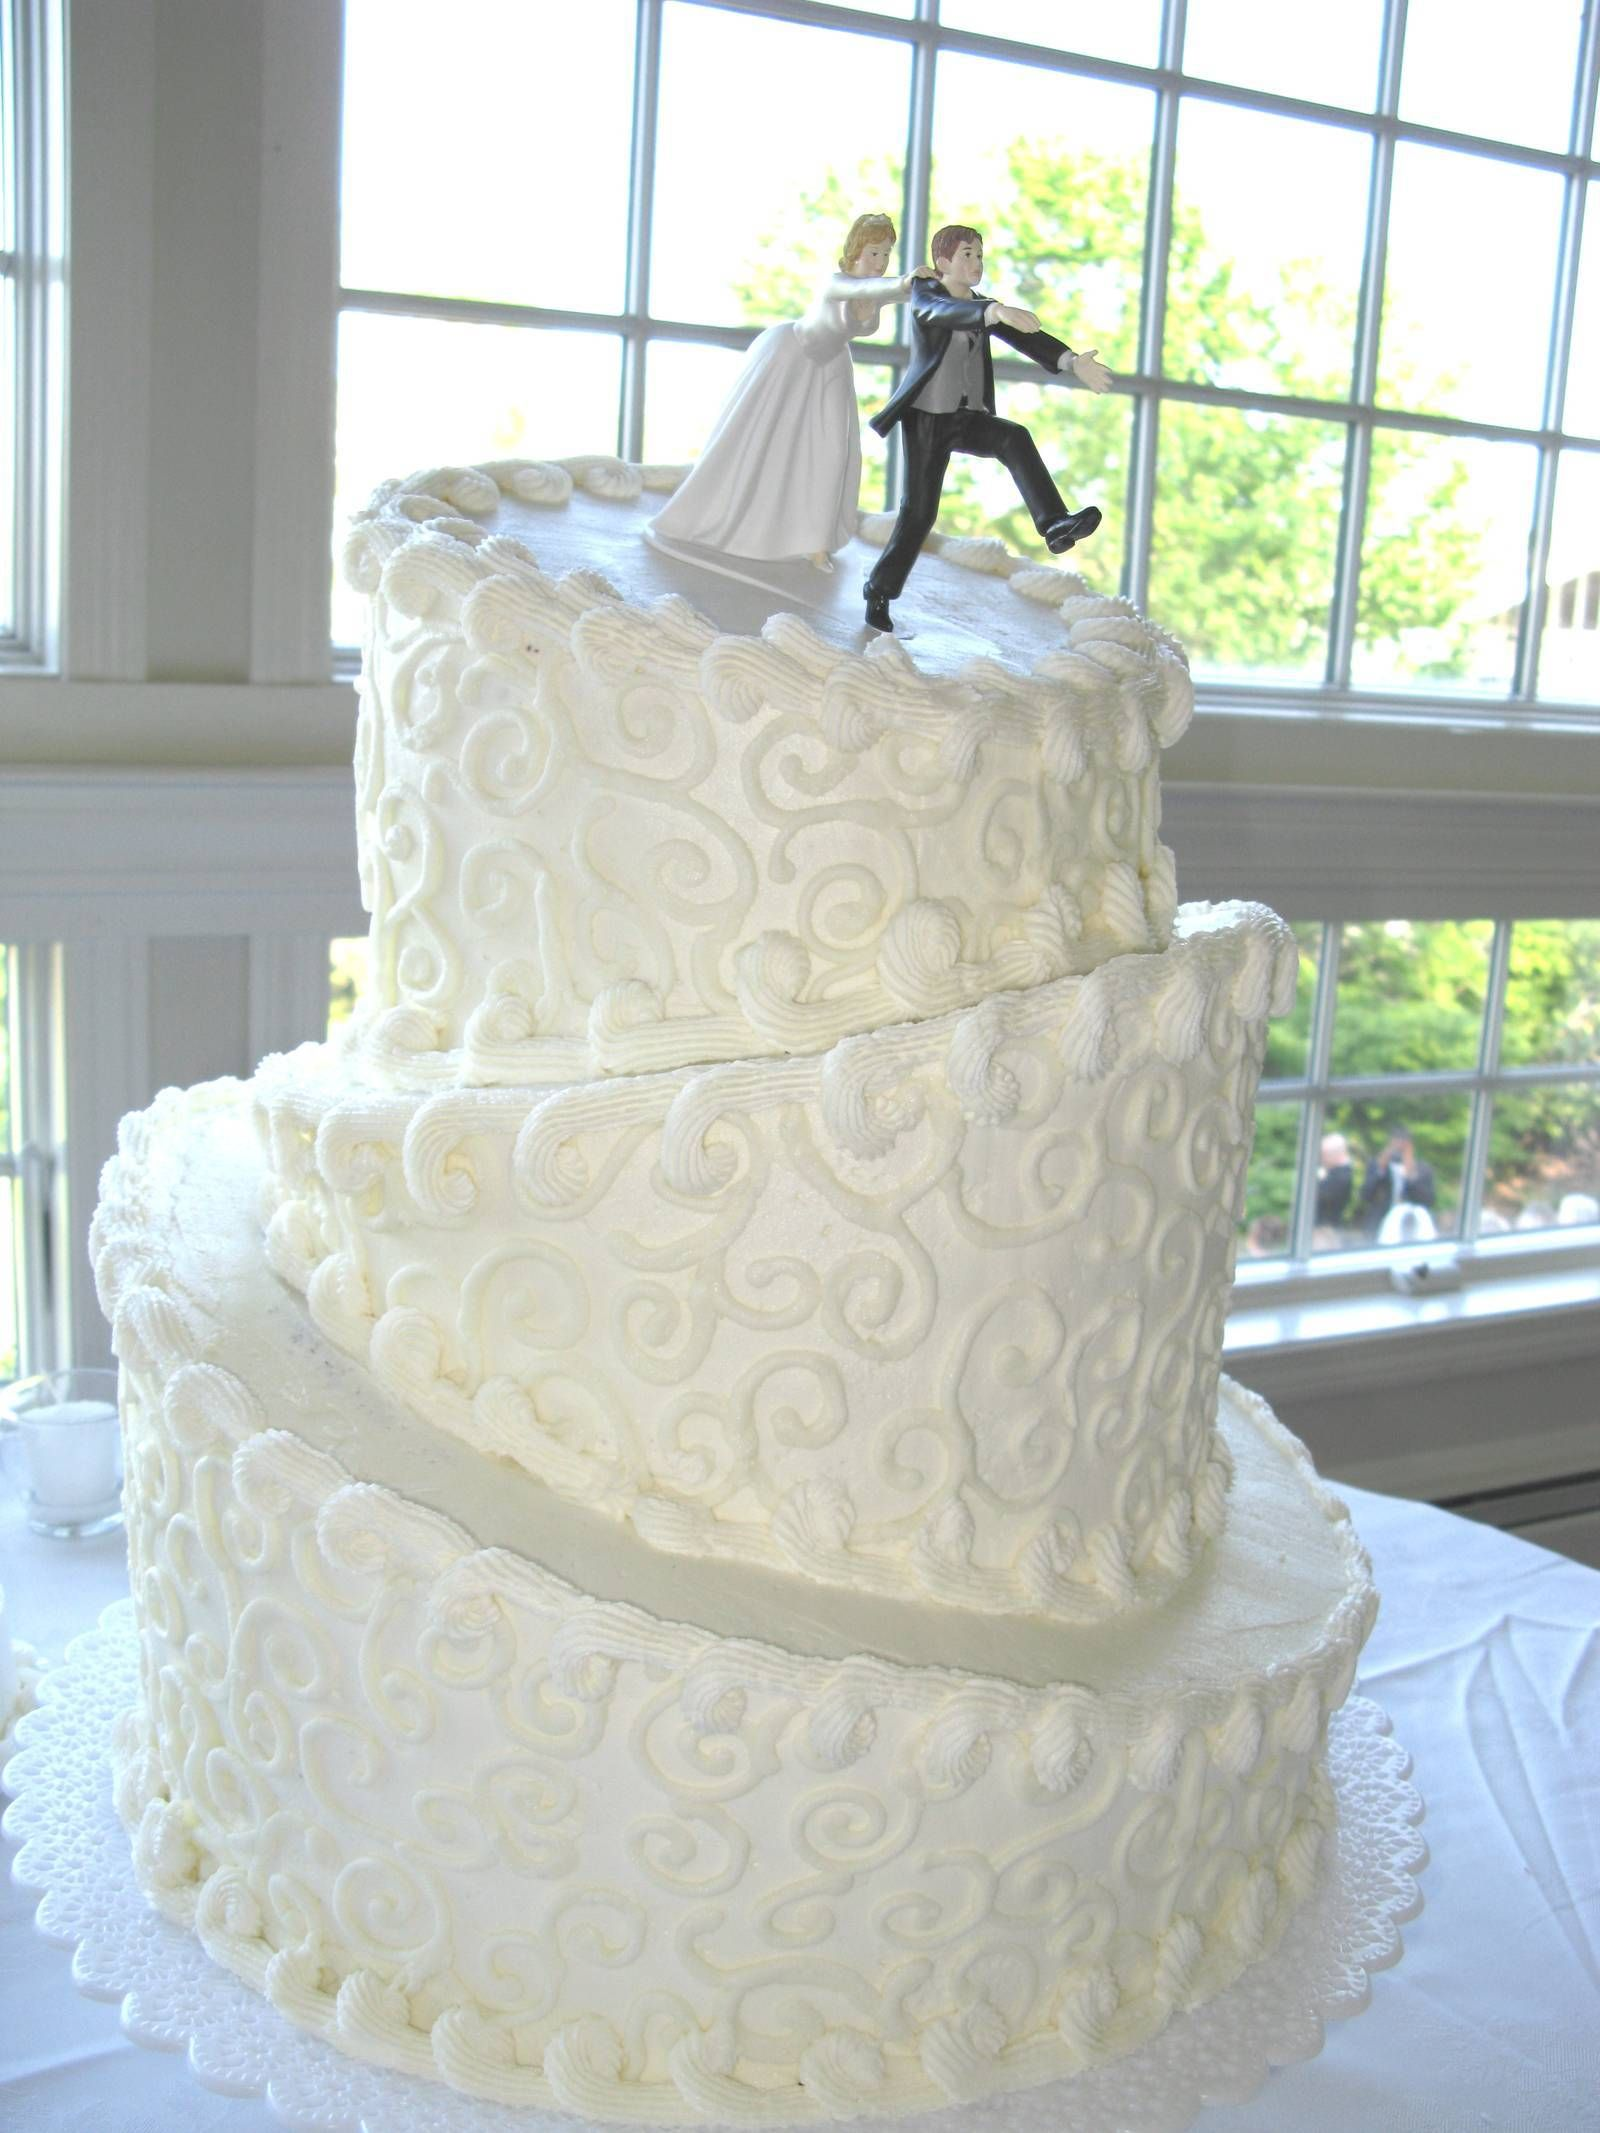 Topsy Turvy Wedding Cake I Like The Look Of This A Lot Not Groom Running Off Though Lol